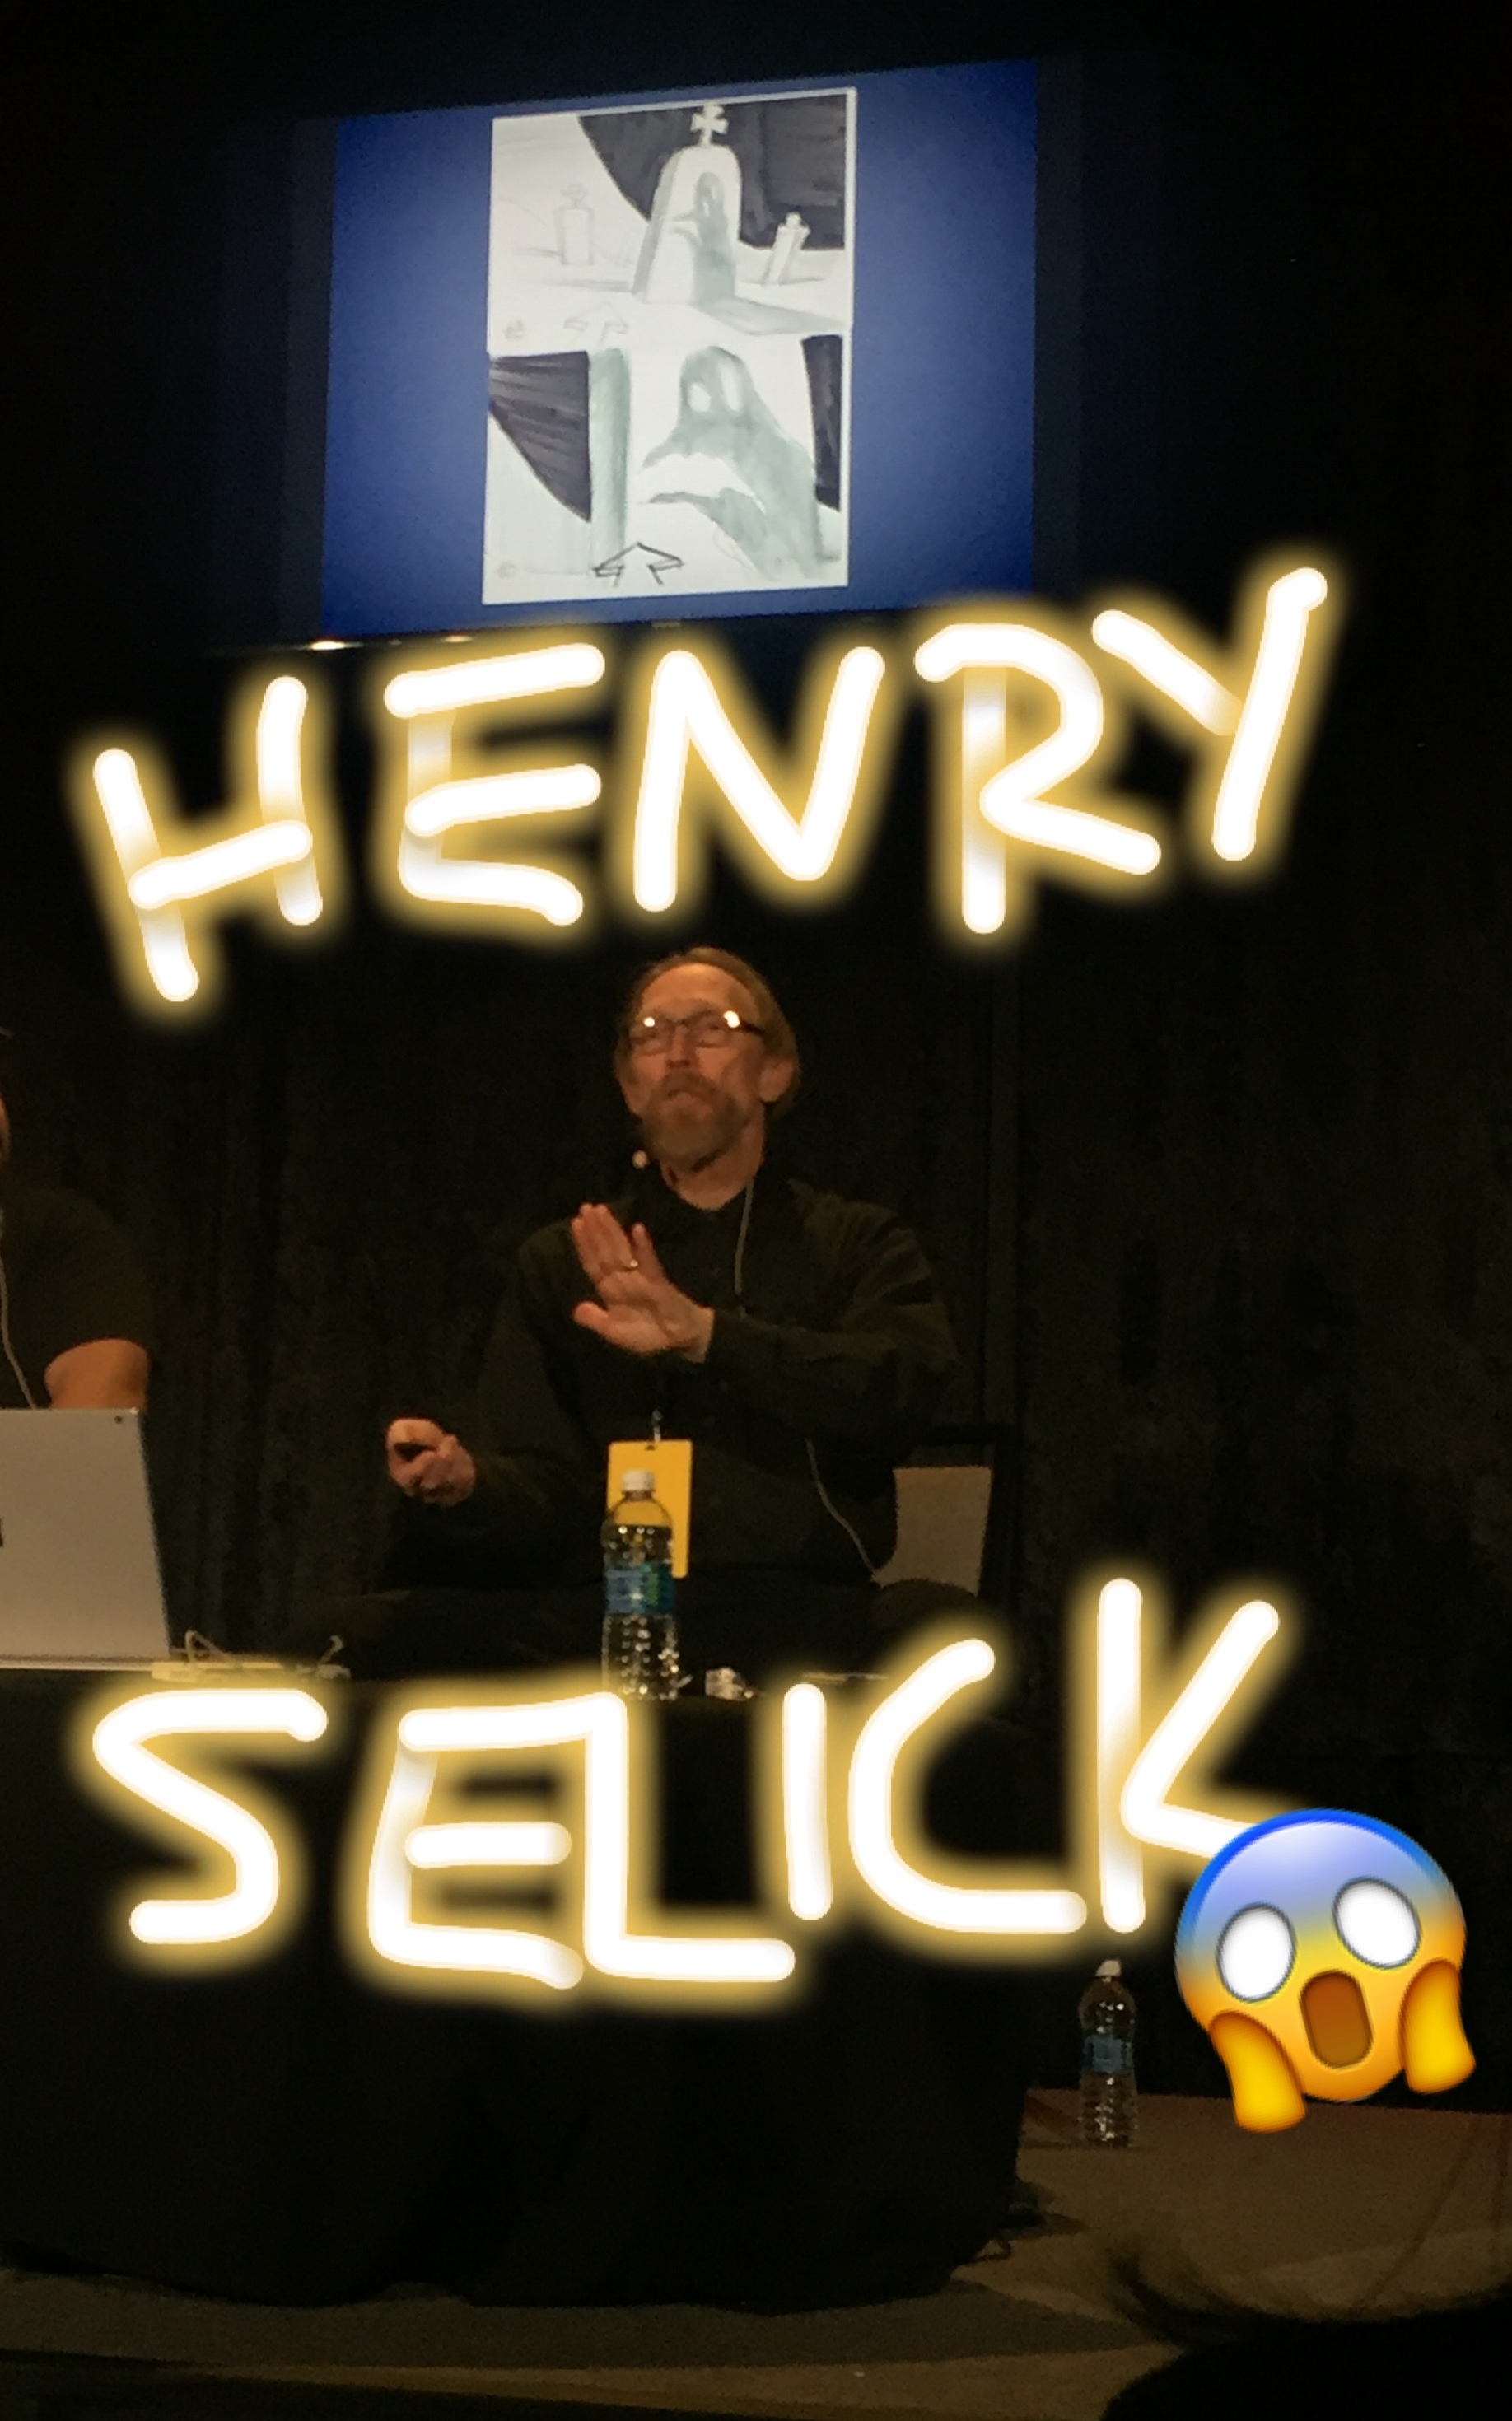 Pinch me, I'm watching Henry Selick speak!